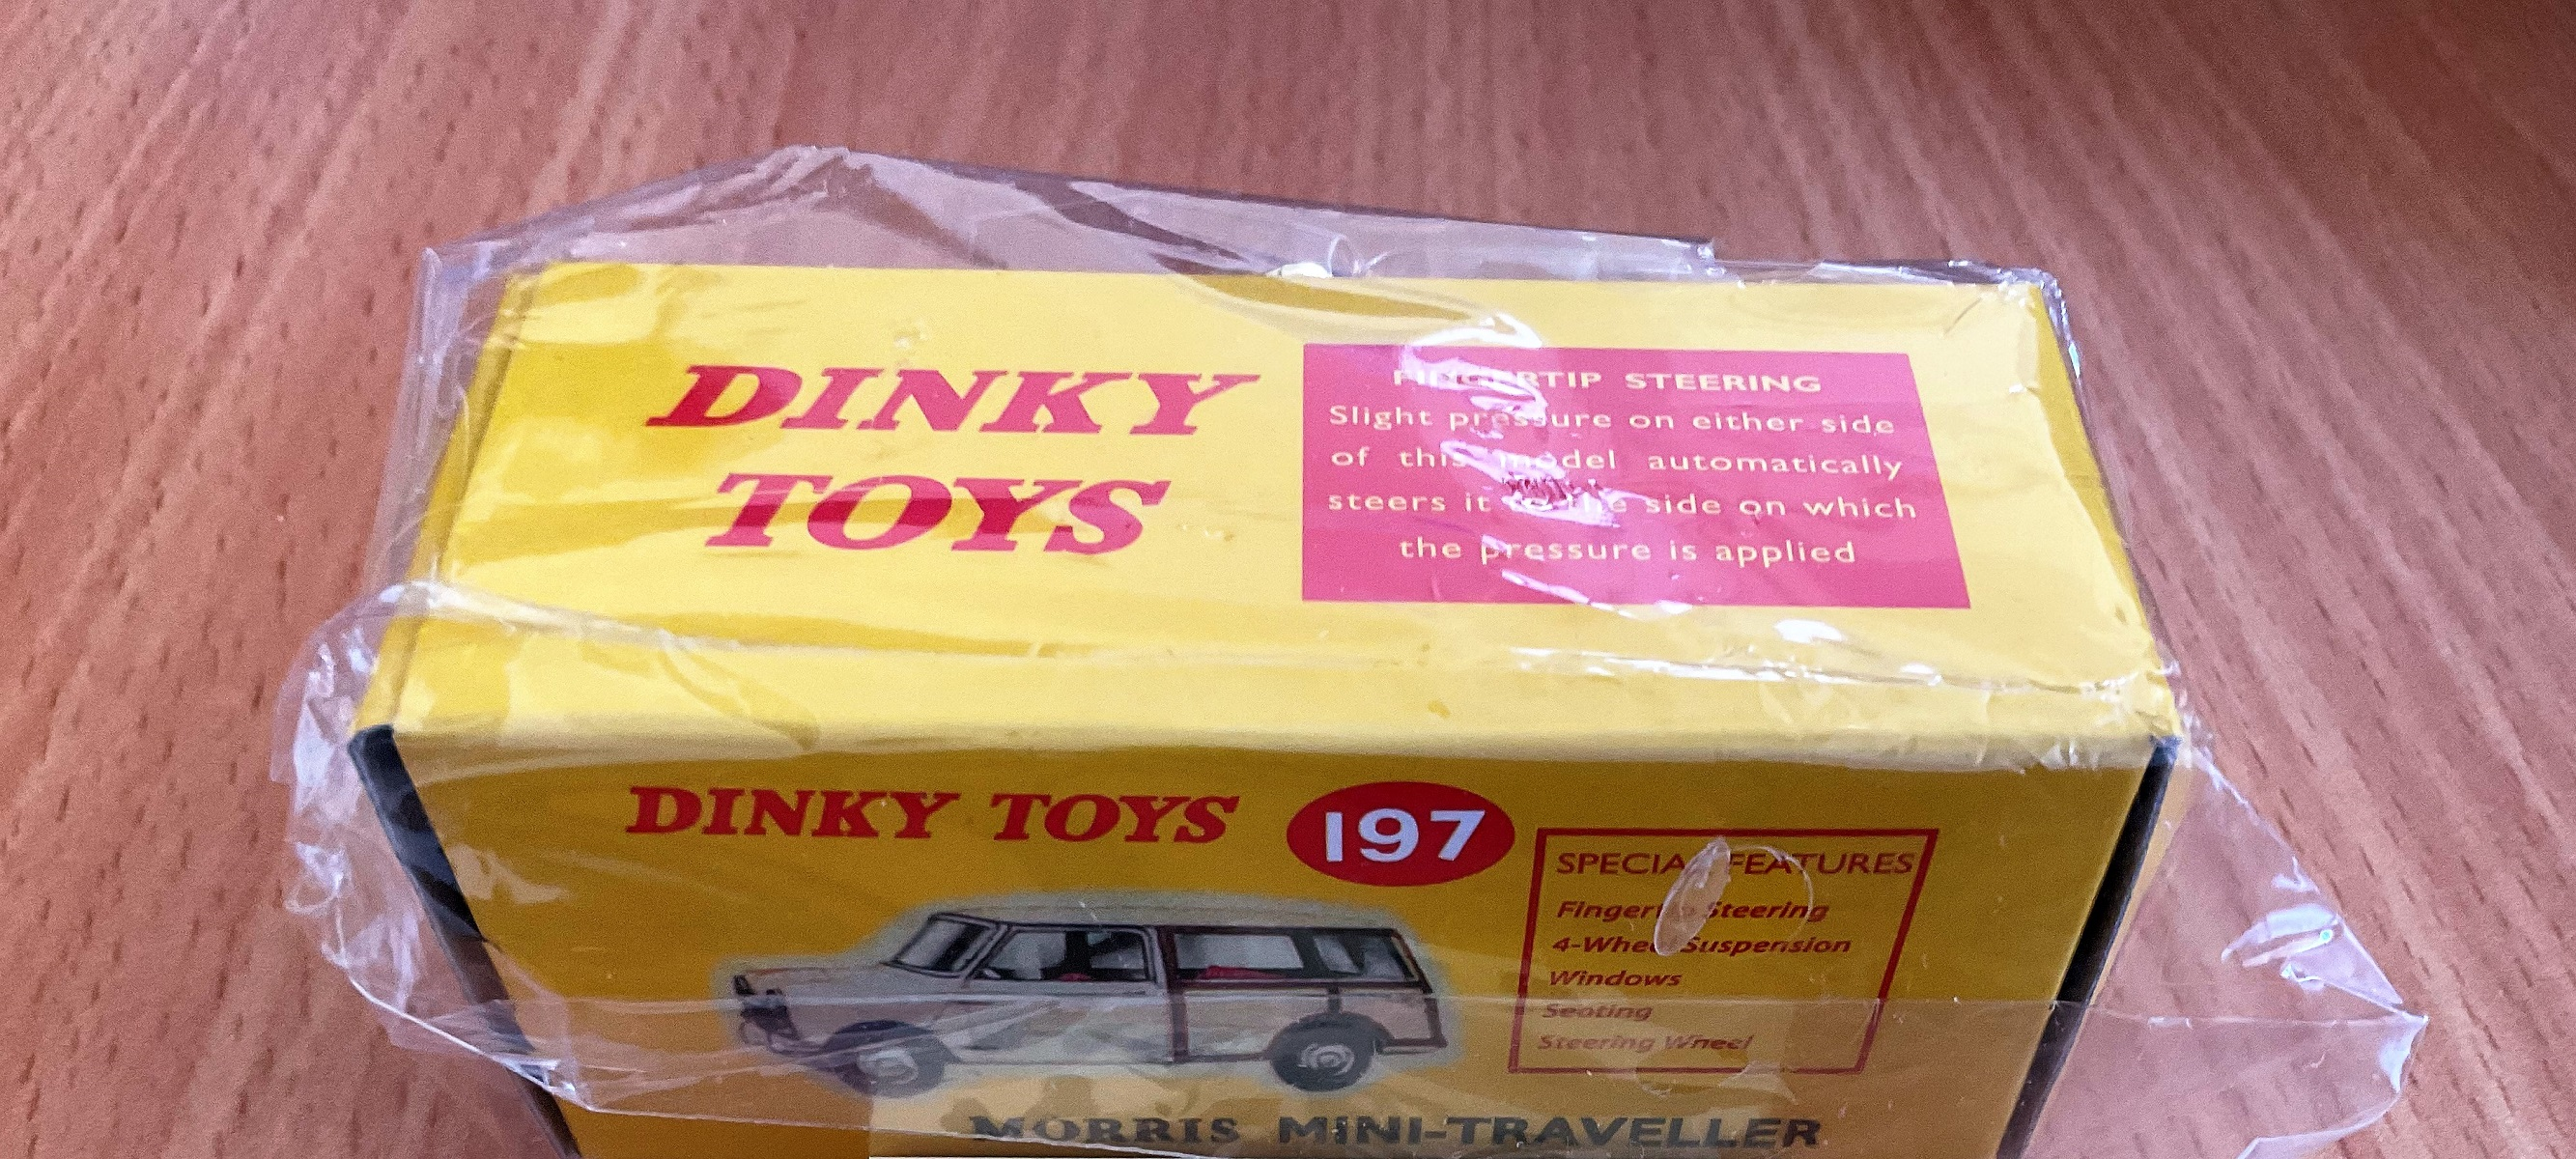 Vintage Toys. Dinky Toys collections. A Morris Mini-Traveller, in the original box, unopened, in - Image 2 of 2